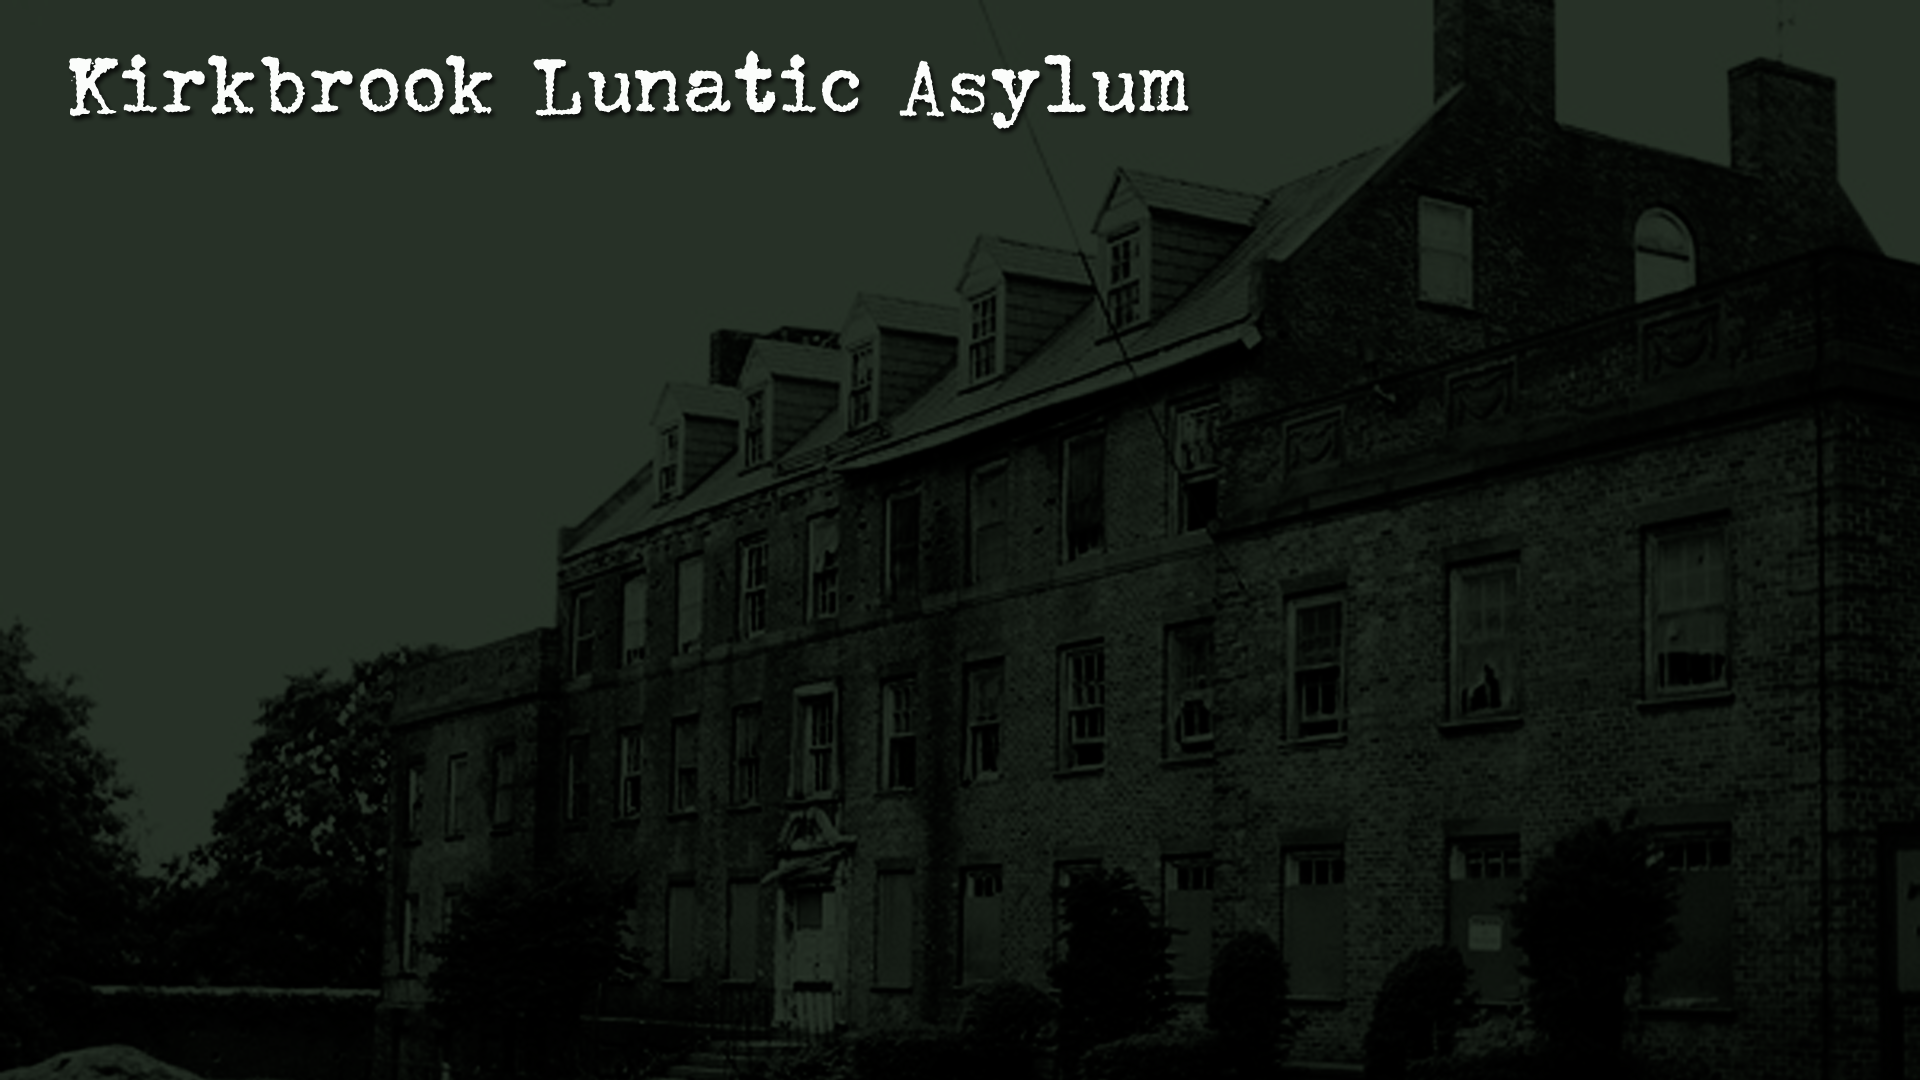 Kirkbrook Lunatic Asylum